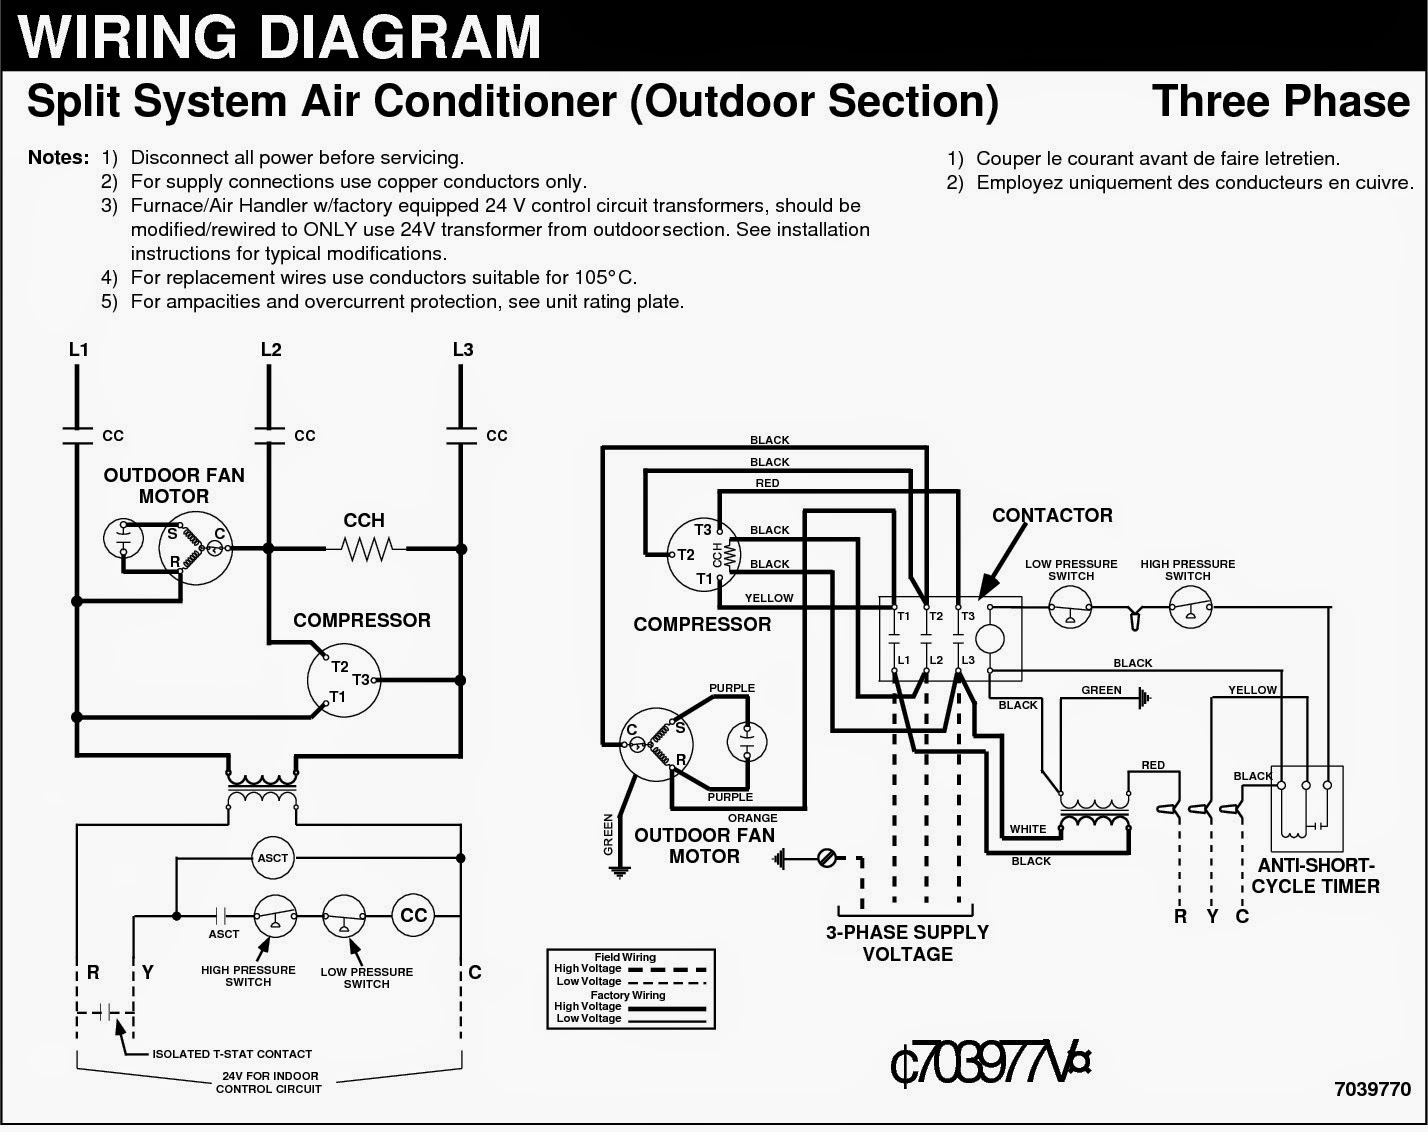 Outside wiring diagram outside light wiring diagram wiring diagrams outdoor electrical wiring diagrams outside electrical wiring outside switch wiring diagram outdoor wiring diagram wiring data swarovskicordoba Choice Image